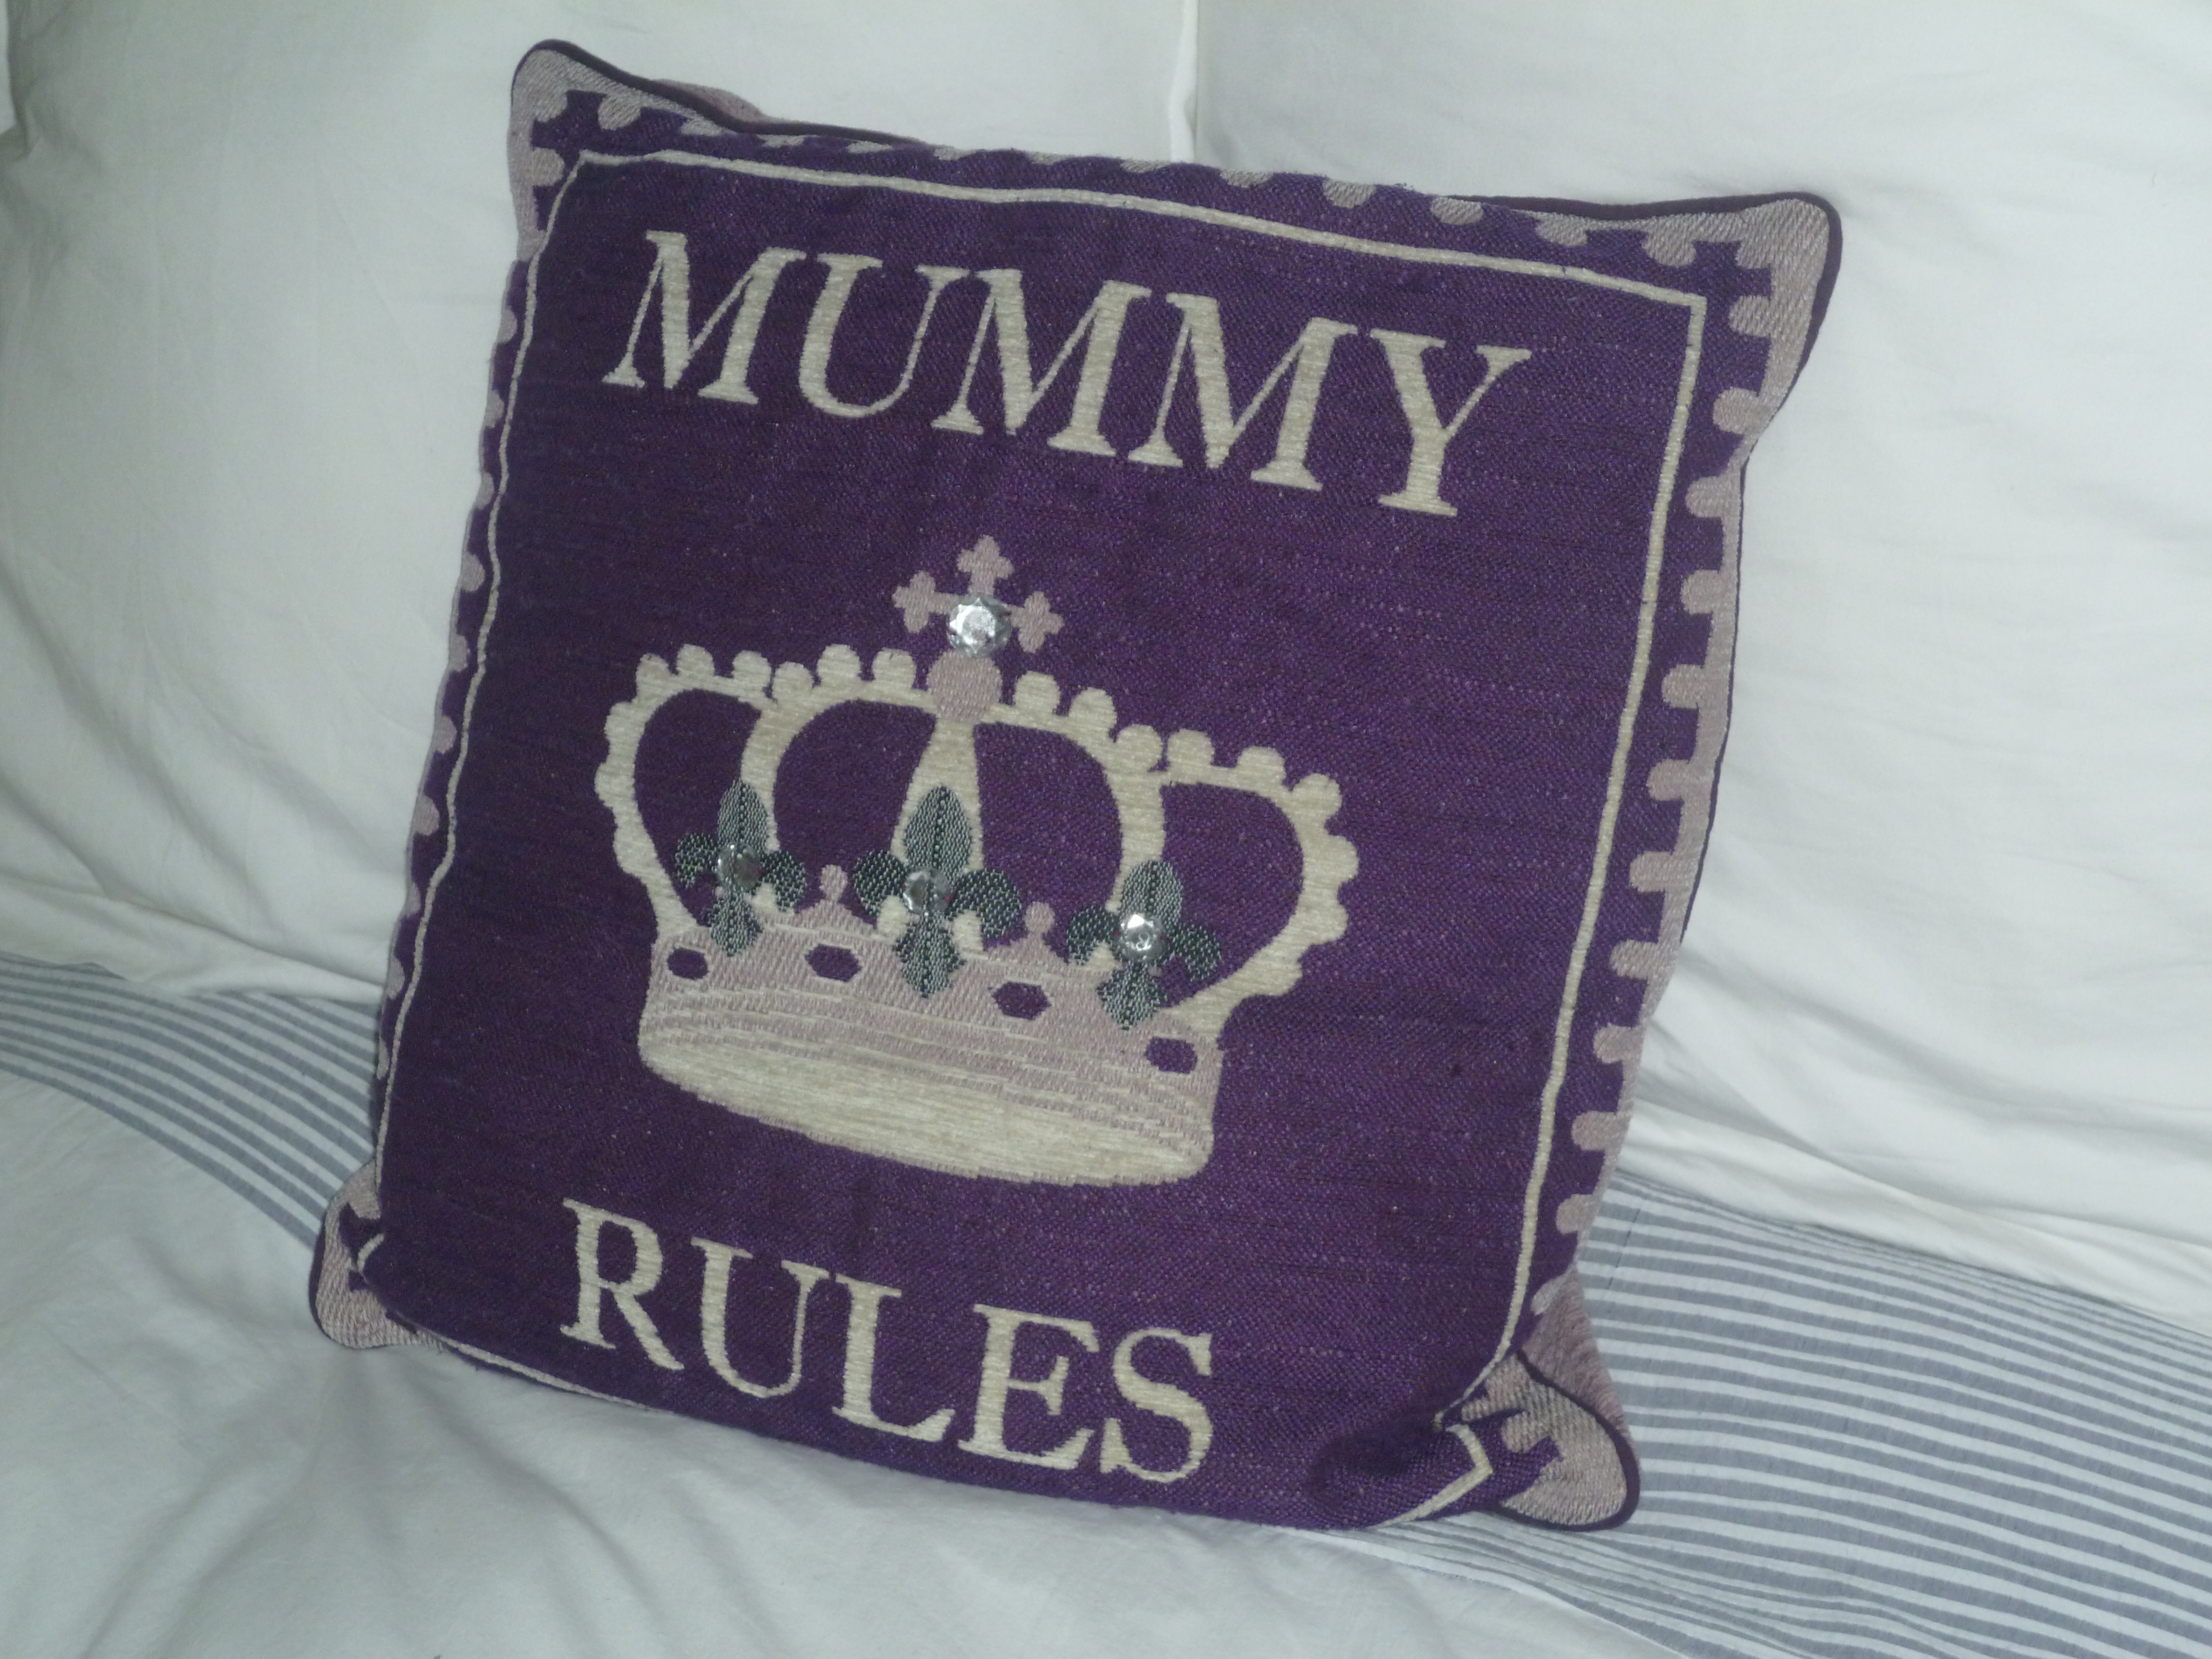 Mummy Rules